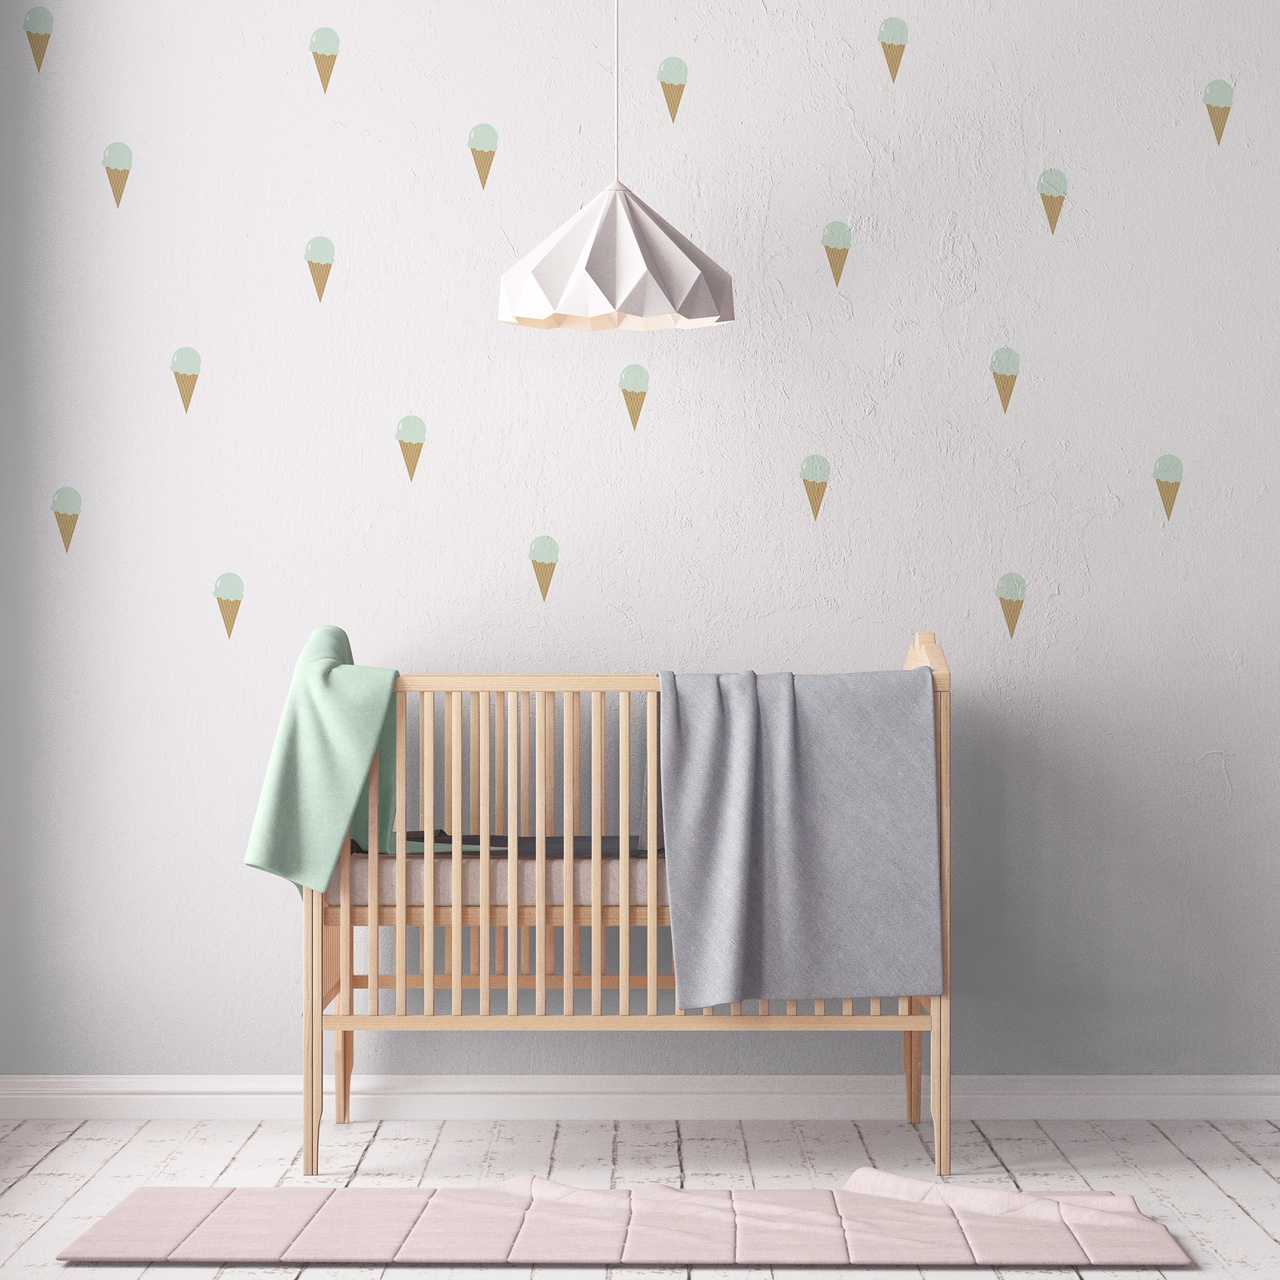 Little Love Wall Decals - Ice Creams